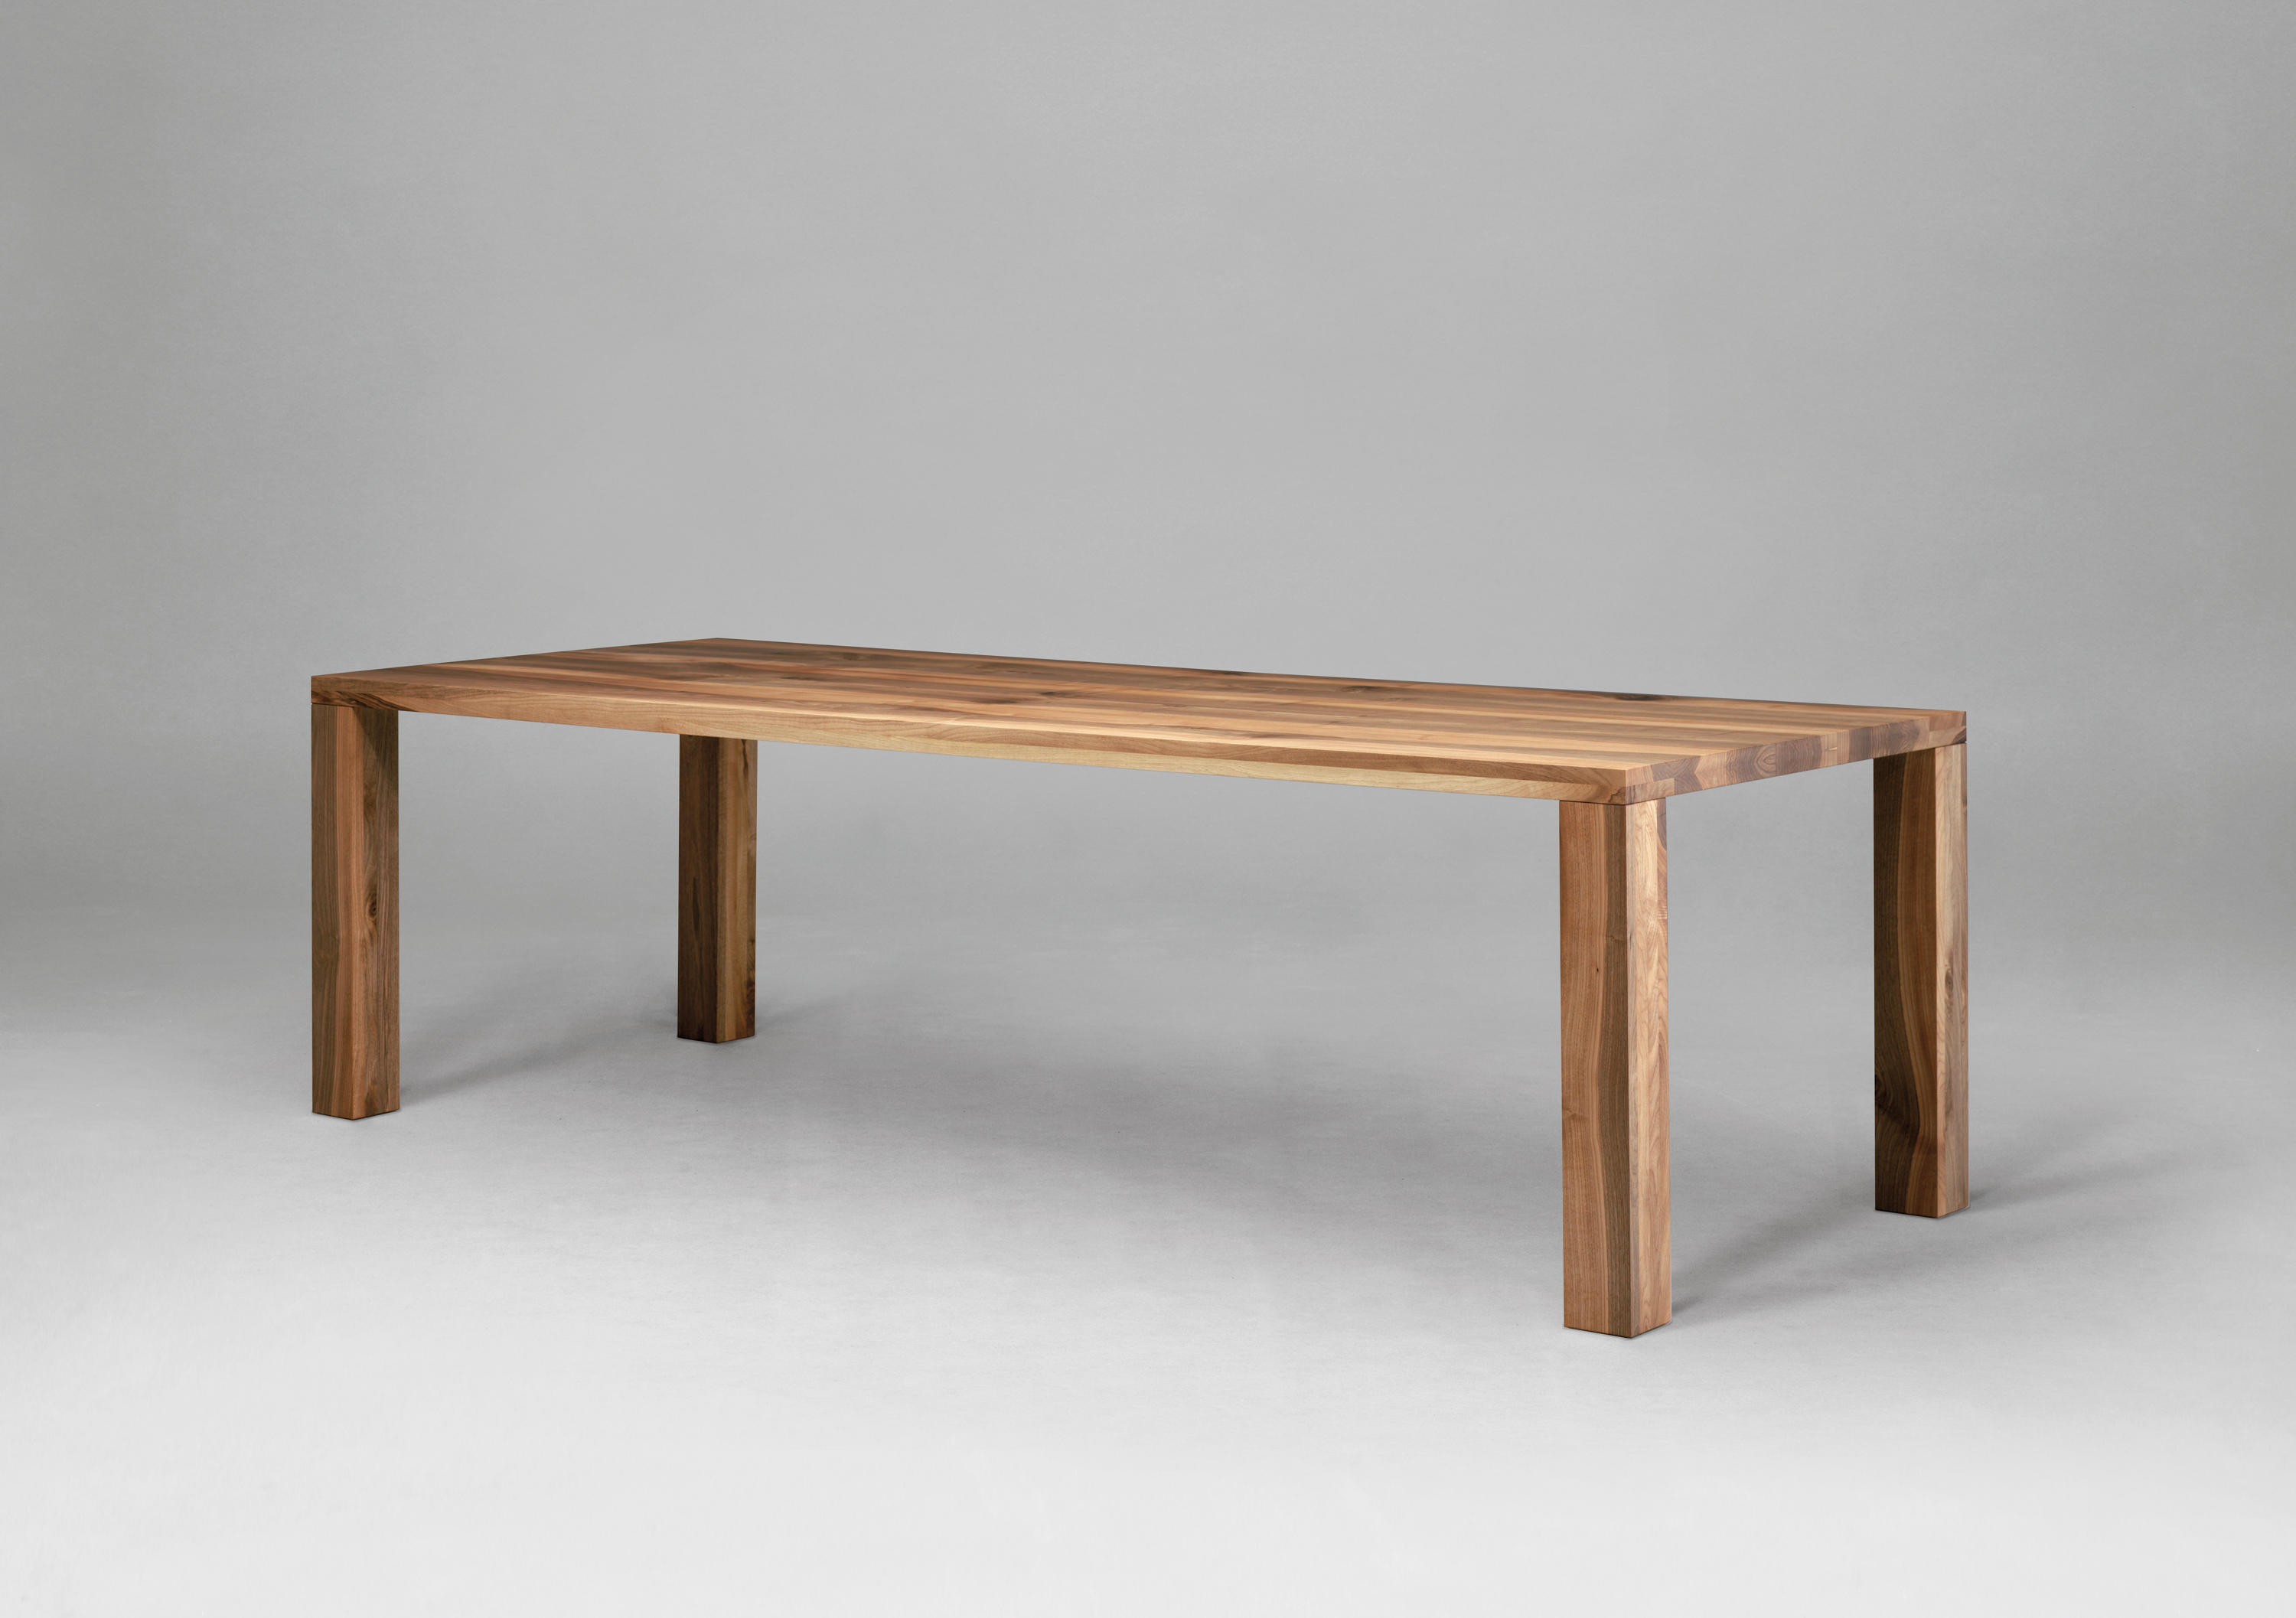 sc 34 table dining tables from janua christian seisenberger architonic. Black Bedroom Furniture Sets. Home Design Ideas